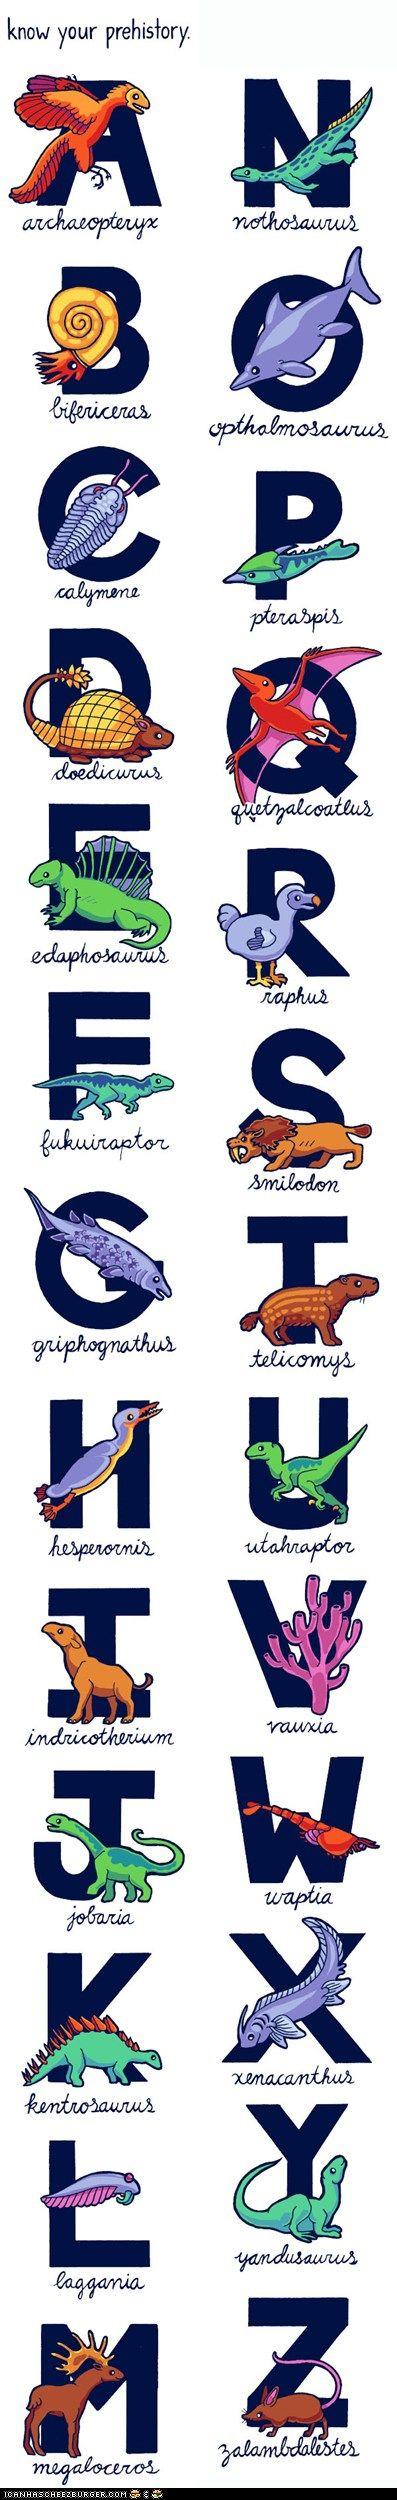 The Prehistoric Animal Alphabet - I wish this were a print - D would love it!